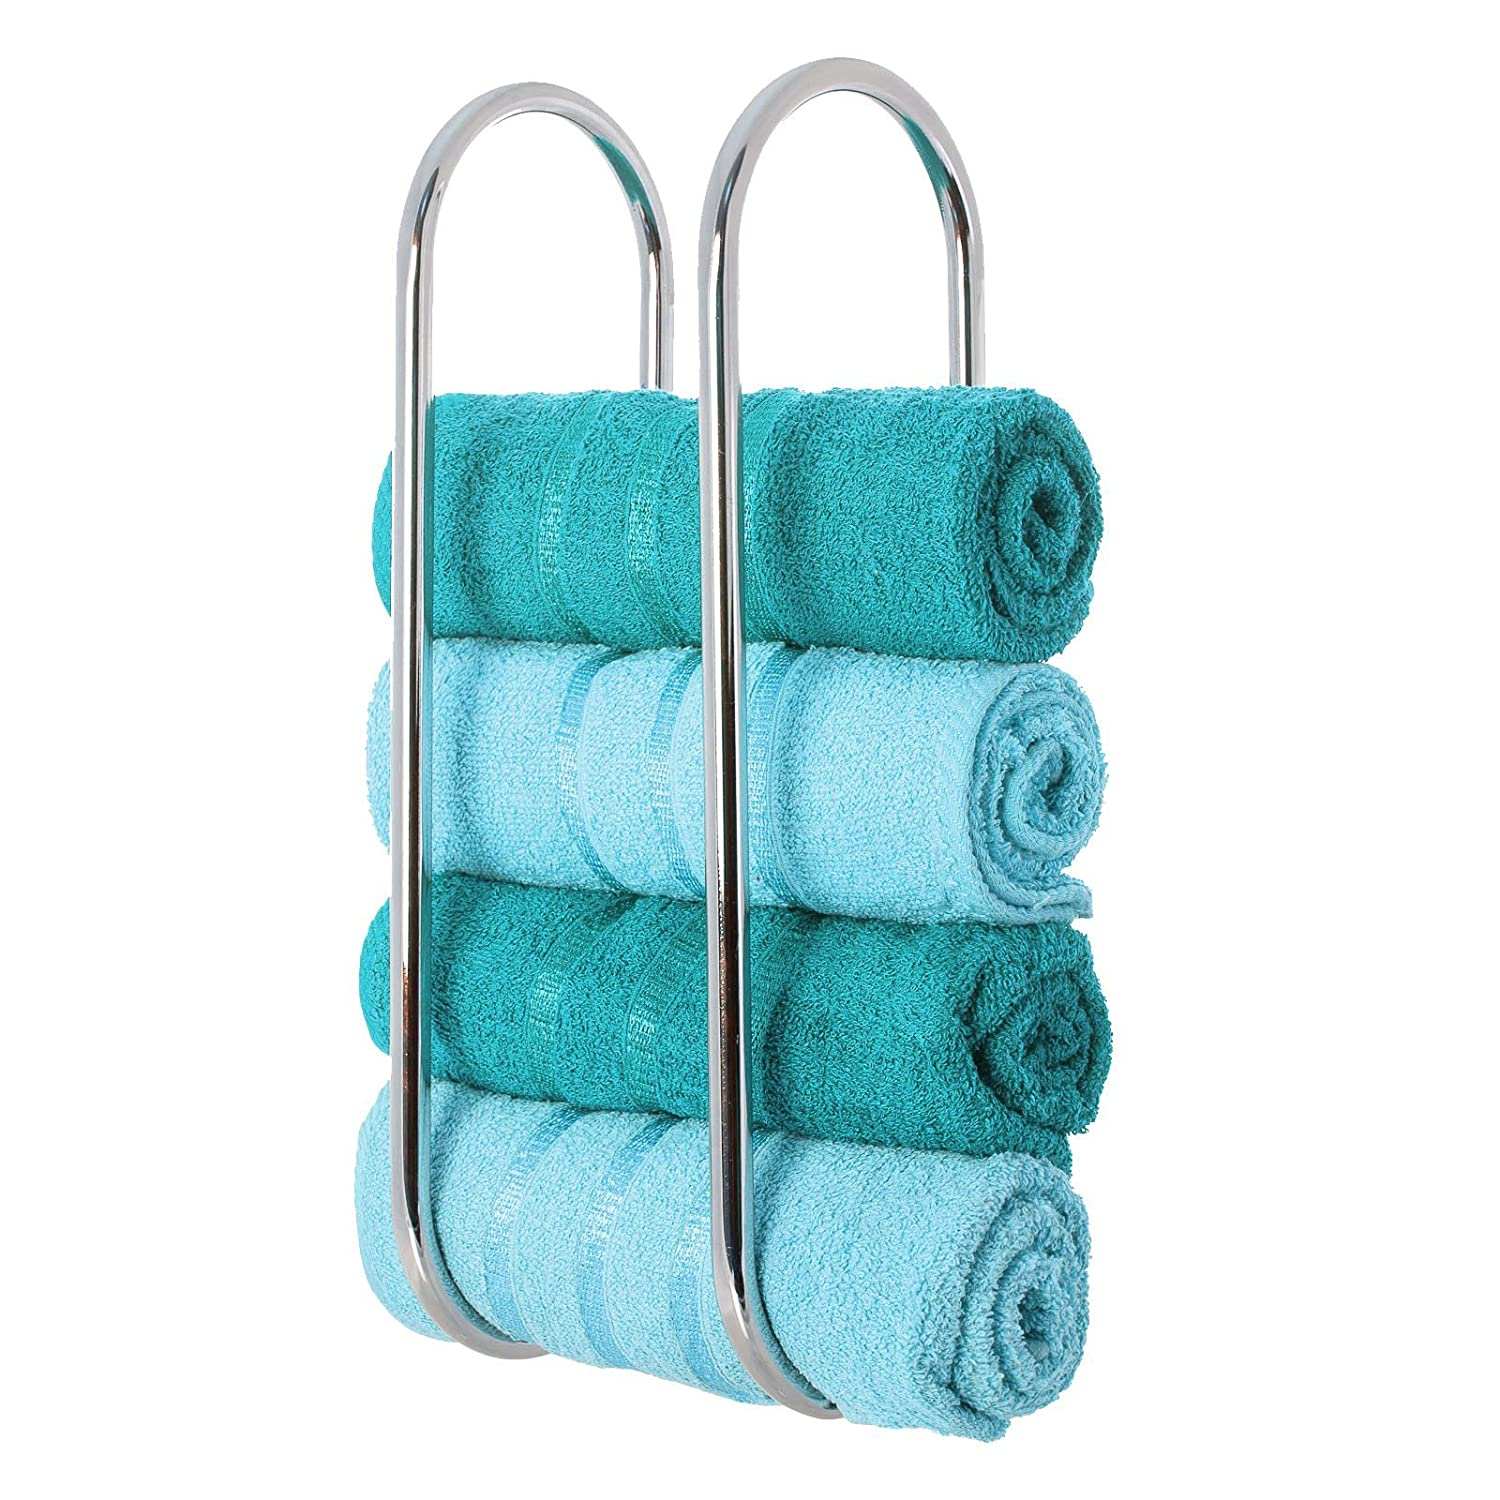 LIVIVO ® Chrome Plated Wall Mounted Oceana Bathroom Towel Rail Holder Storage Rack